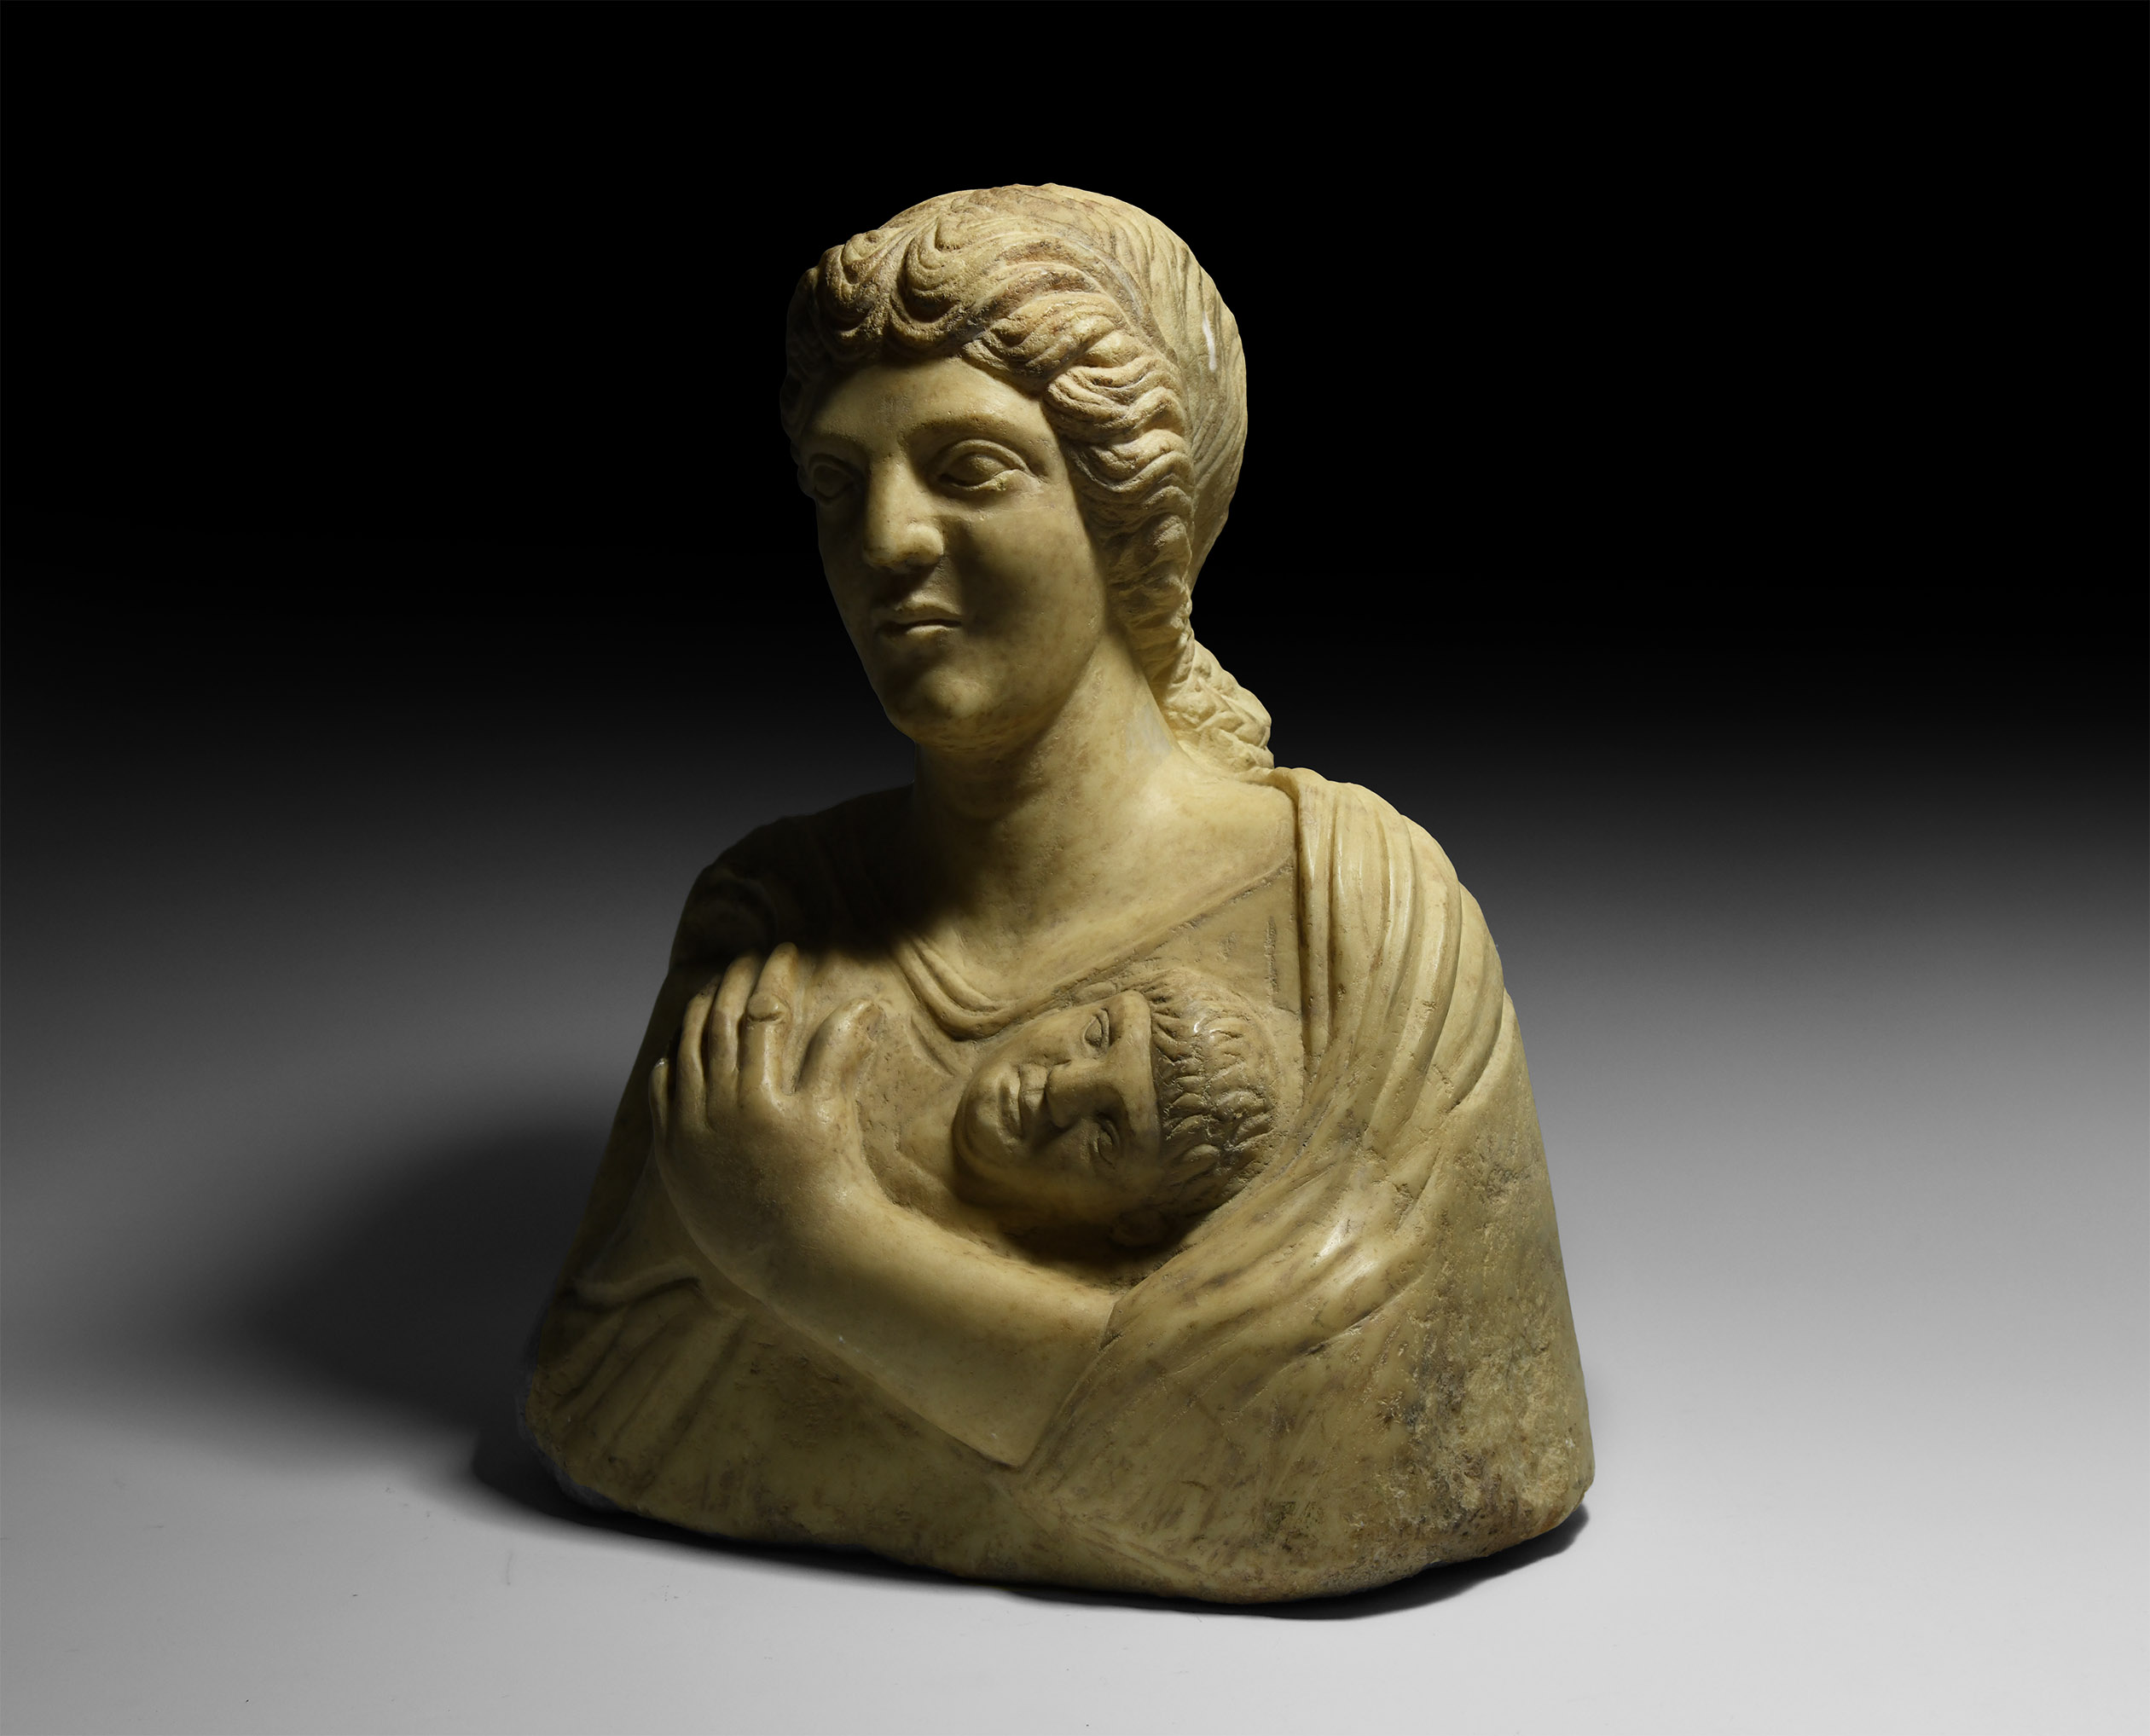 Roman Bust of Goddess and Deceased